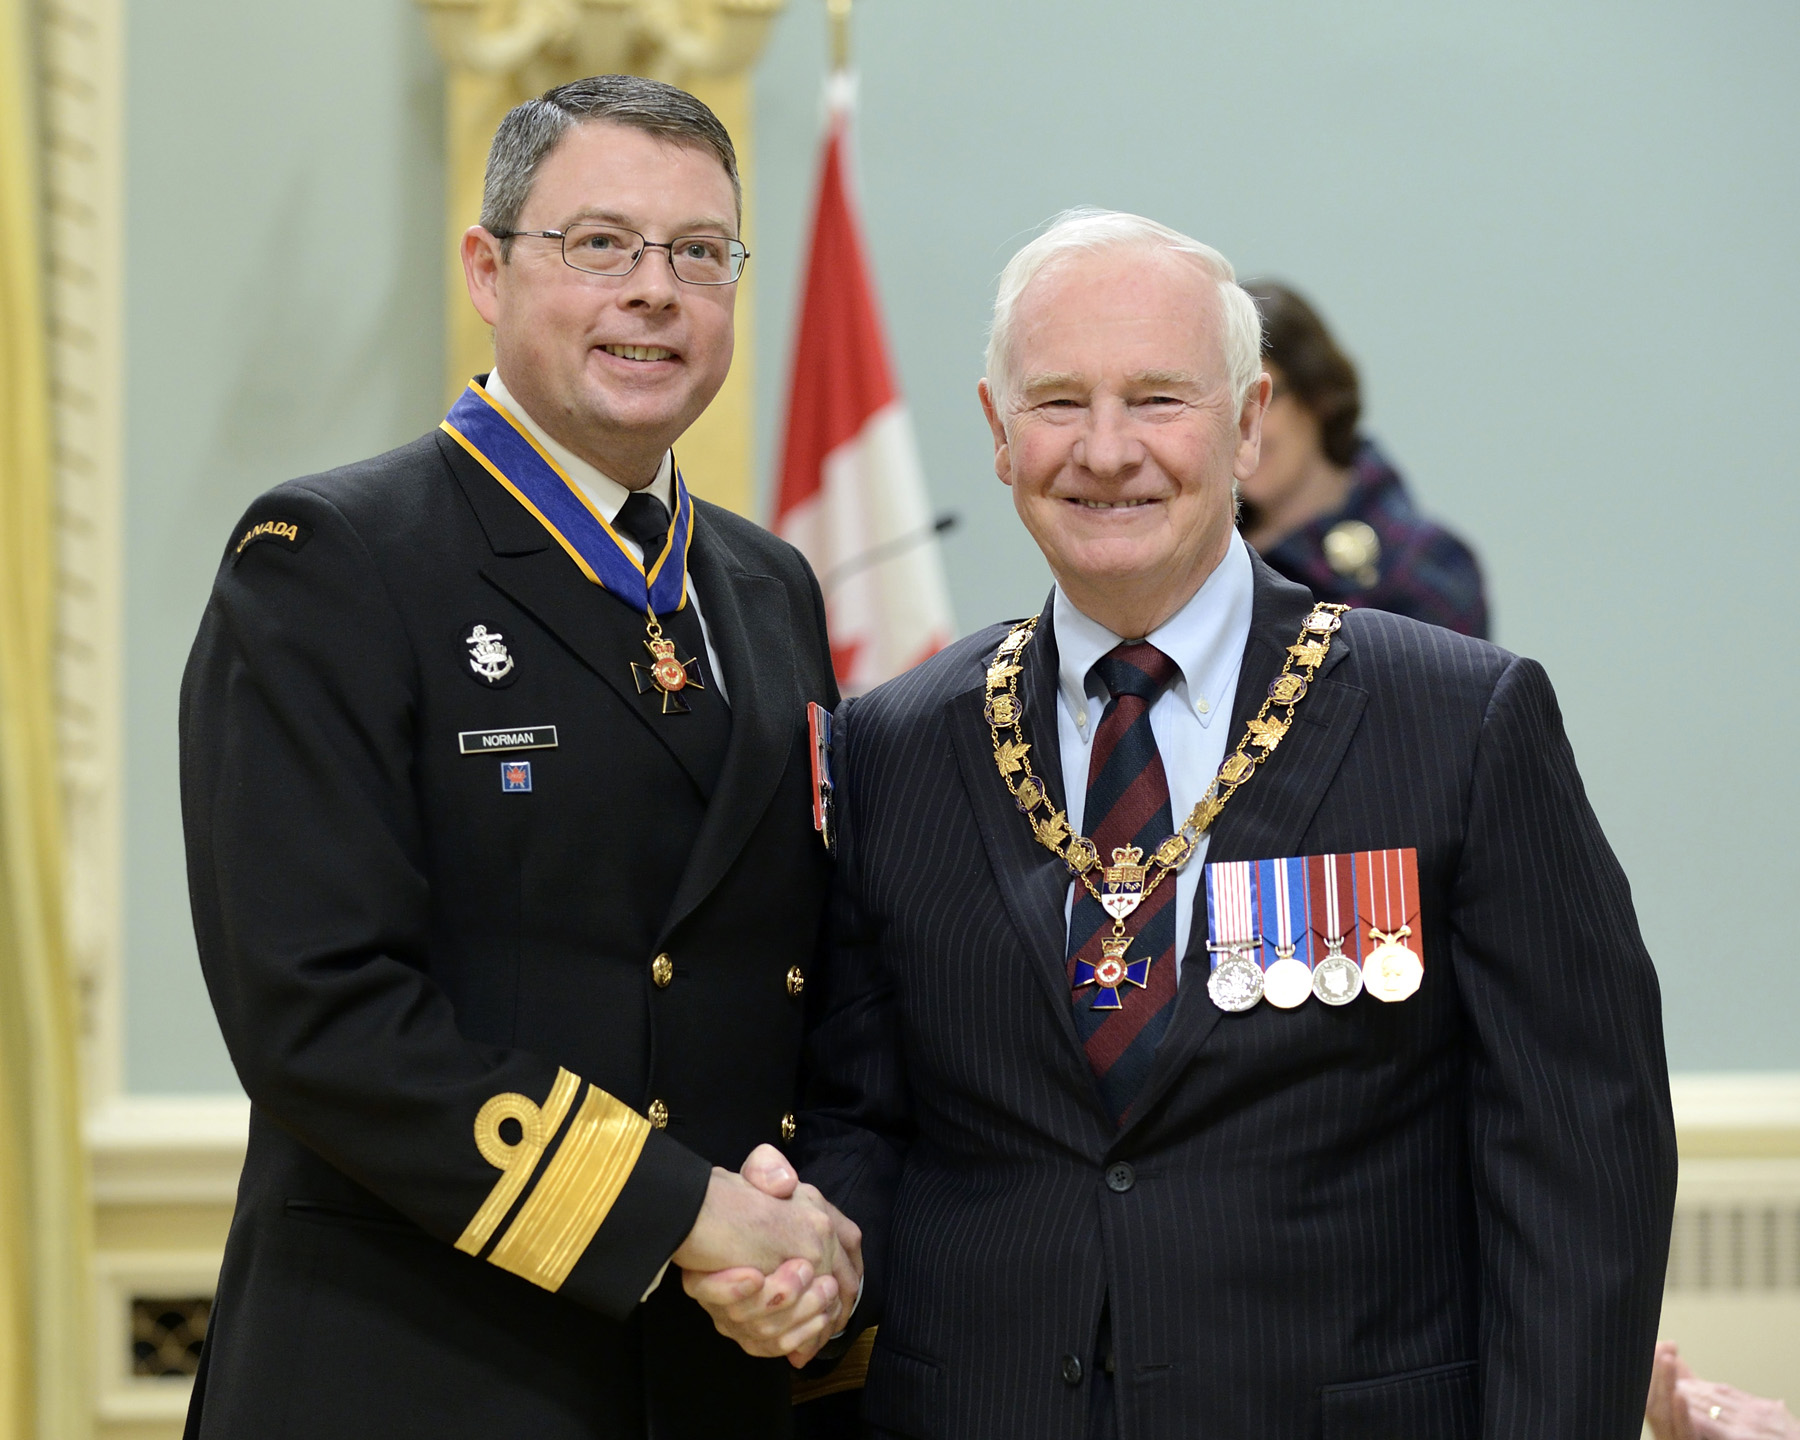 His Excellency presented the Order of Military Merit at the Commander level (C.M.M.) to Rear-Admiral Mark Norman, C.M.M., C.D., Office of the Chief of the Naval Staff (Ottawa, Ont.).